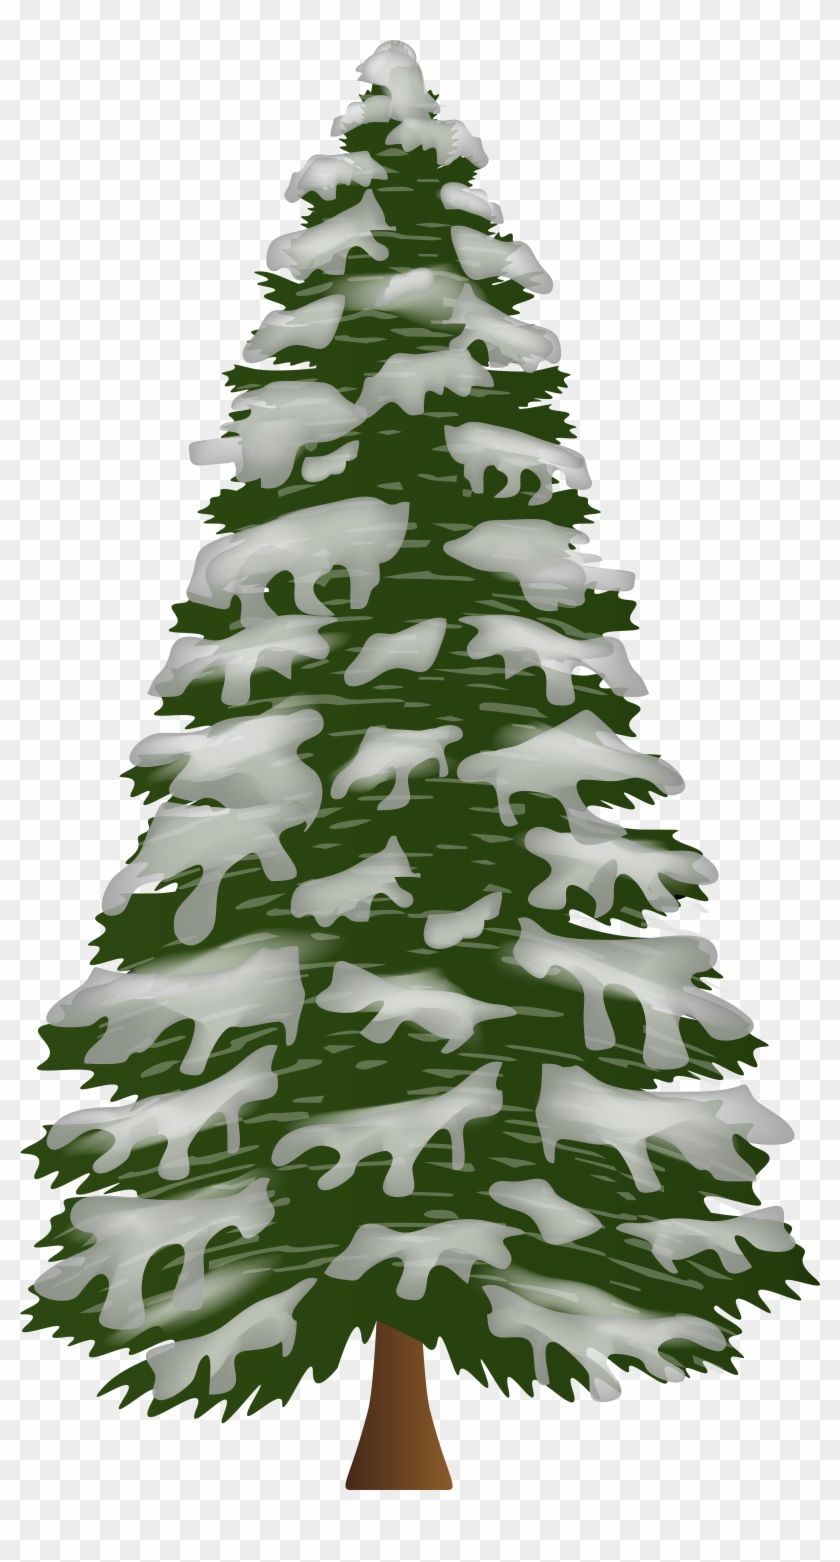 Pine Tree With Snow Png Clip Art Gallery Yopriceville.